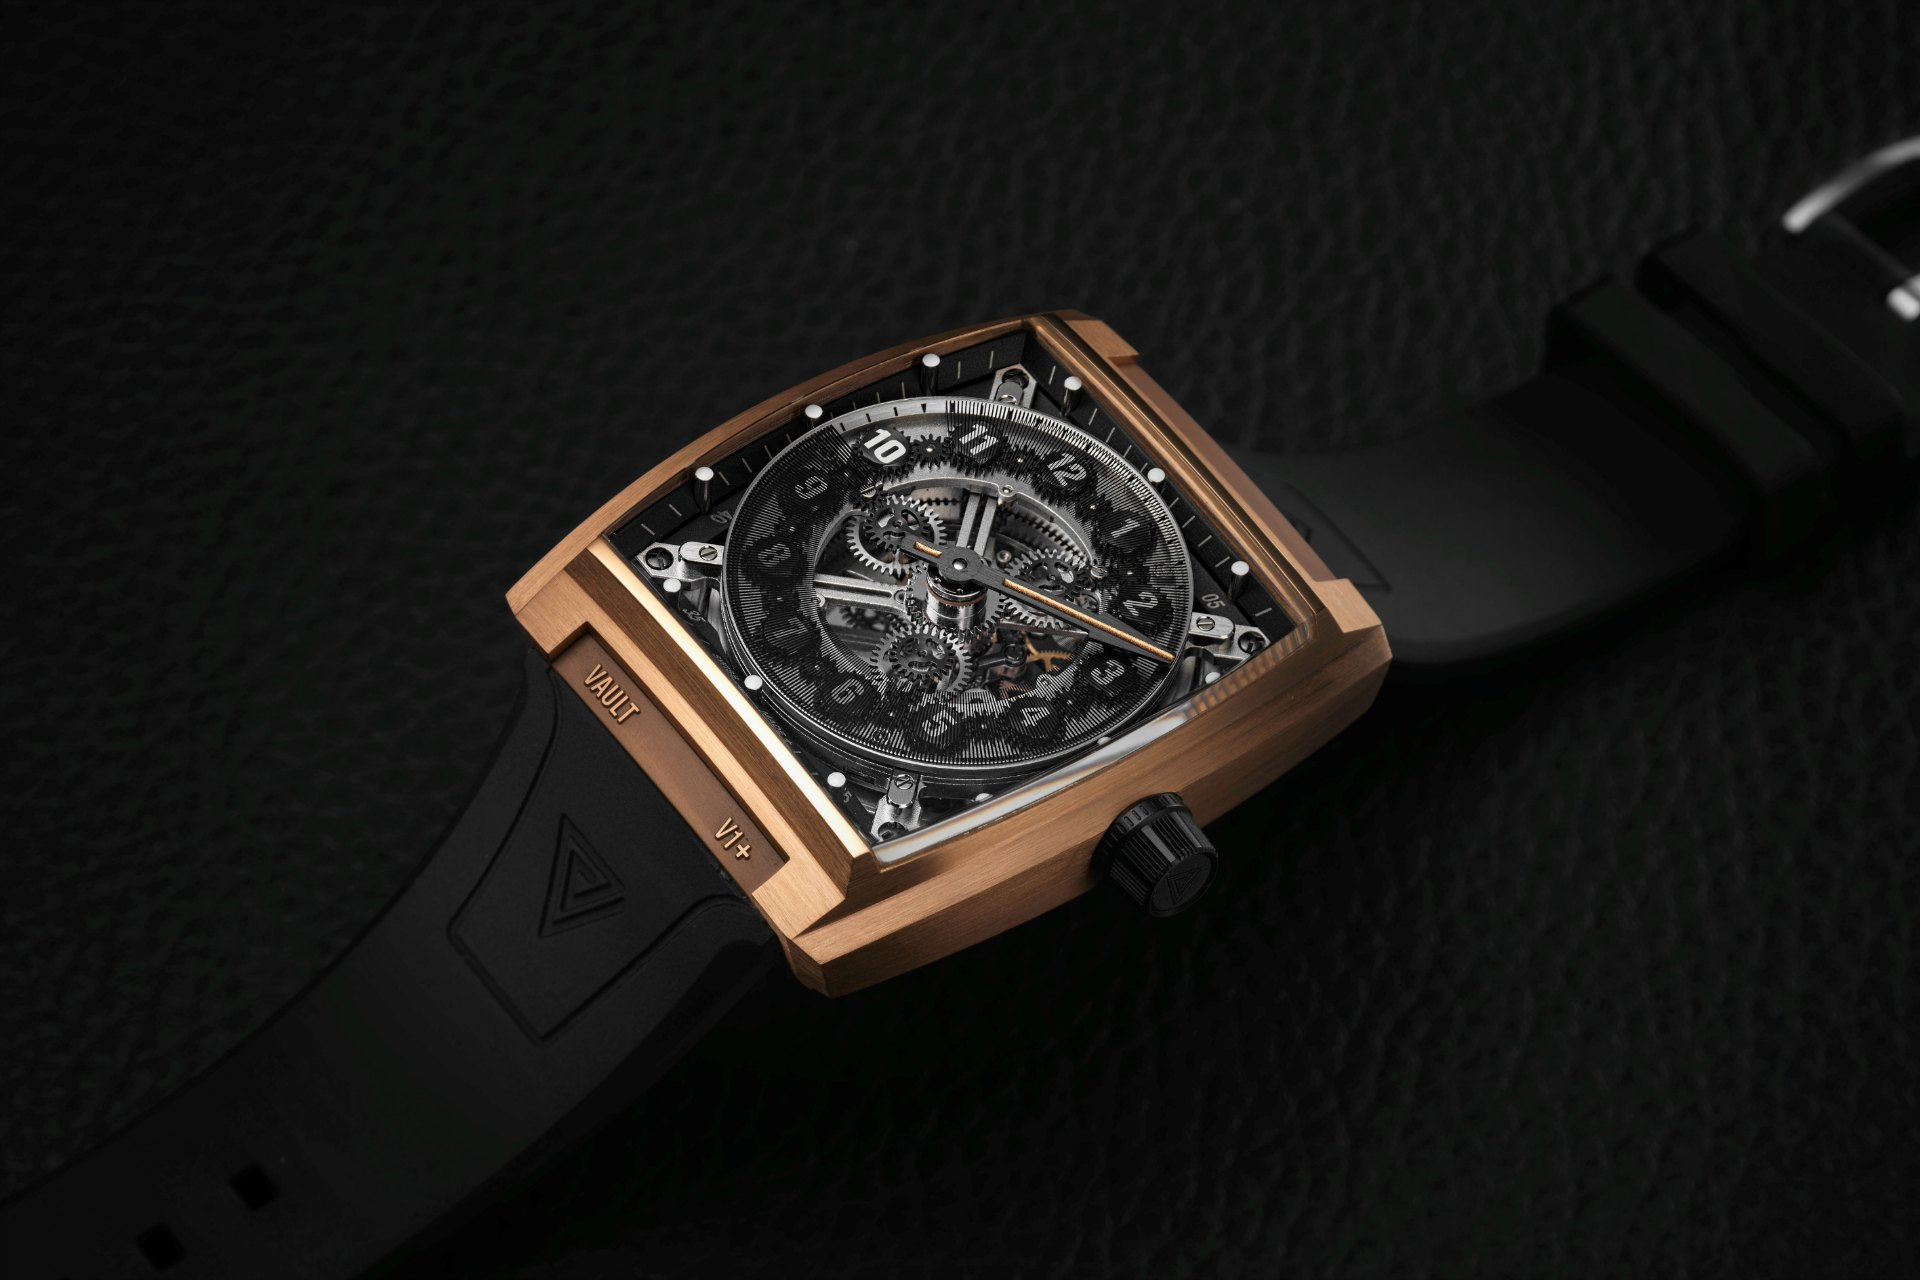 Vault v1 bespoke gold watch from Vault Swiss